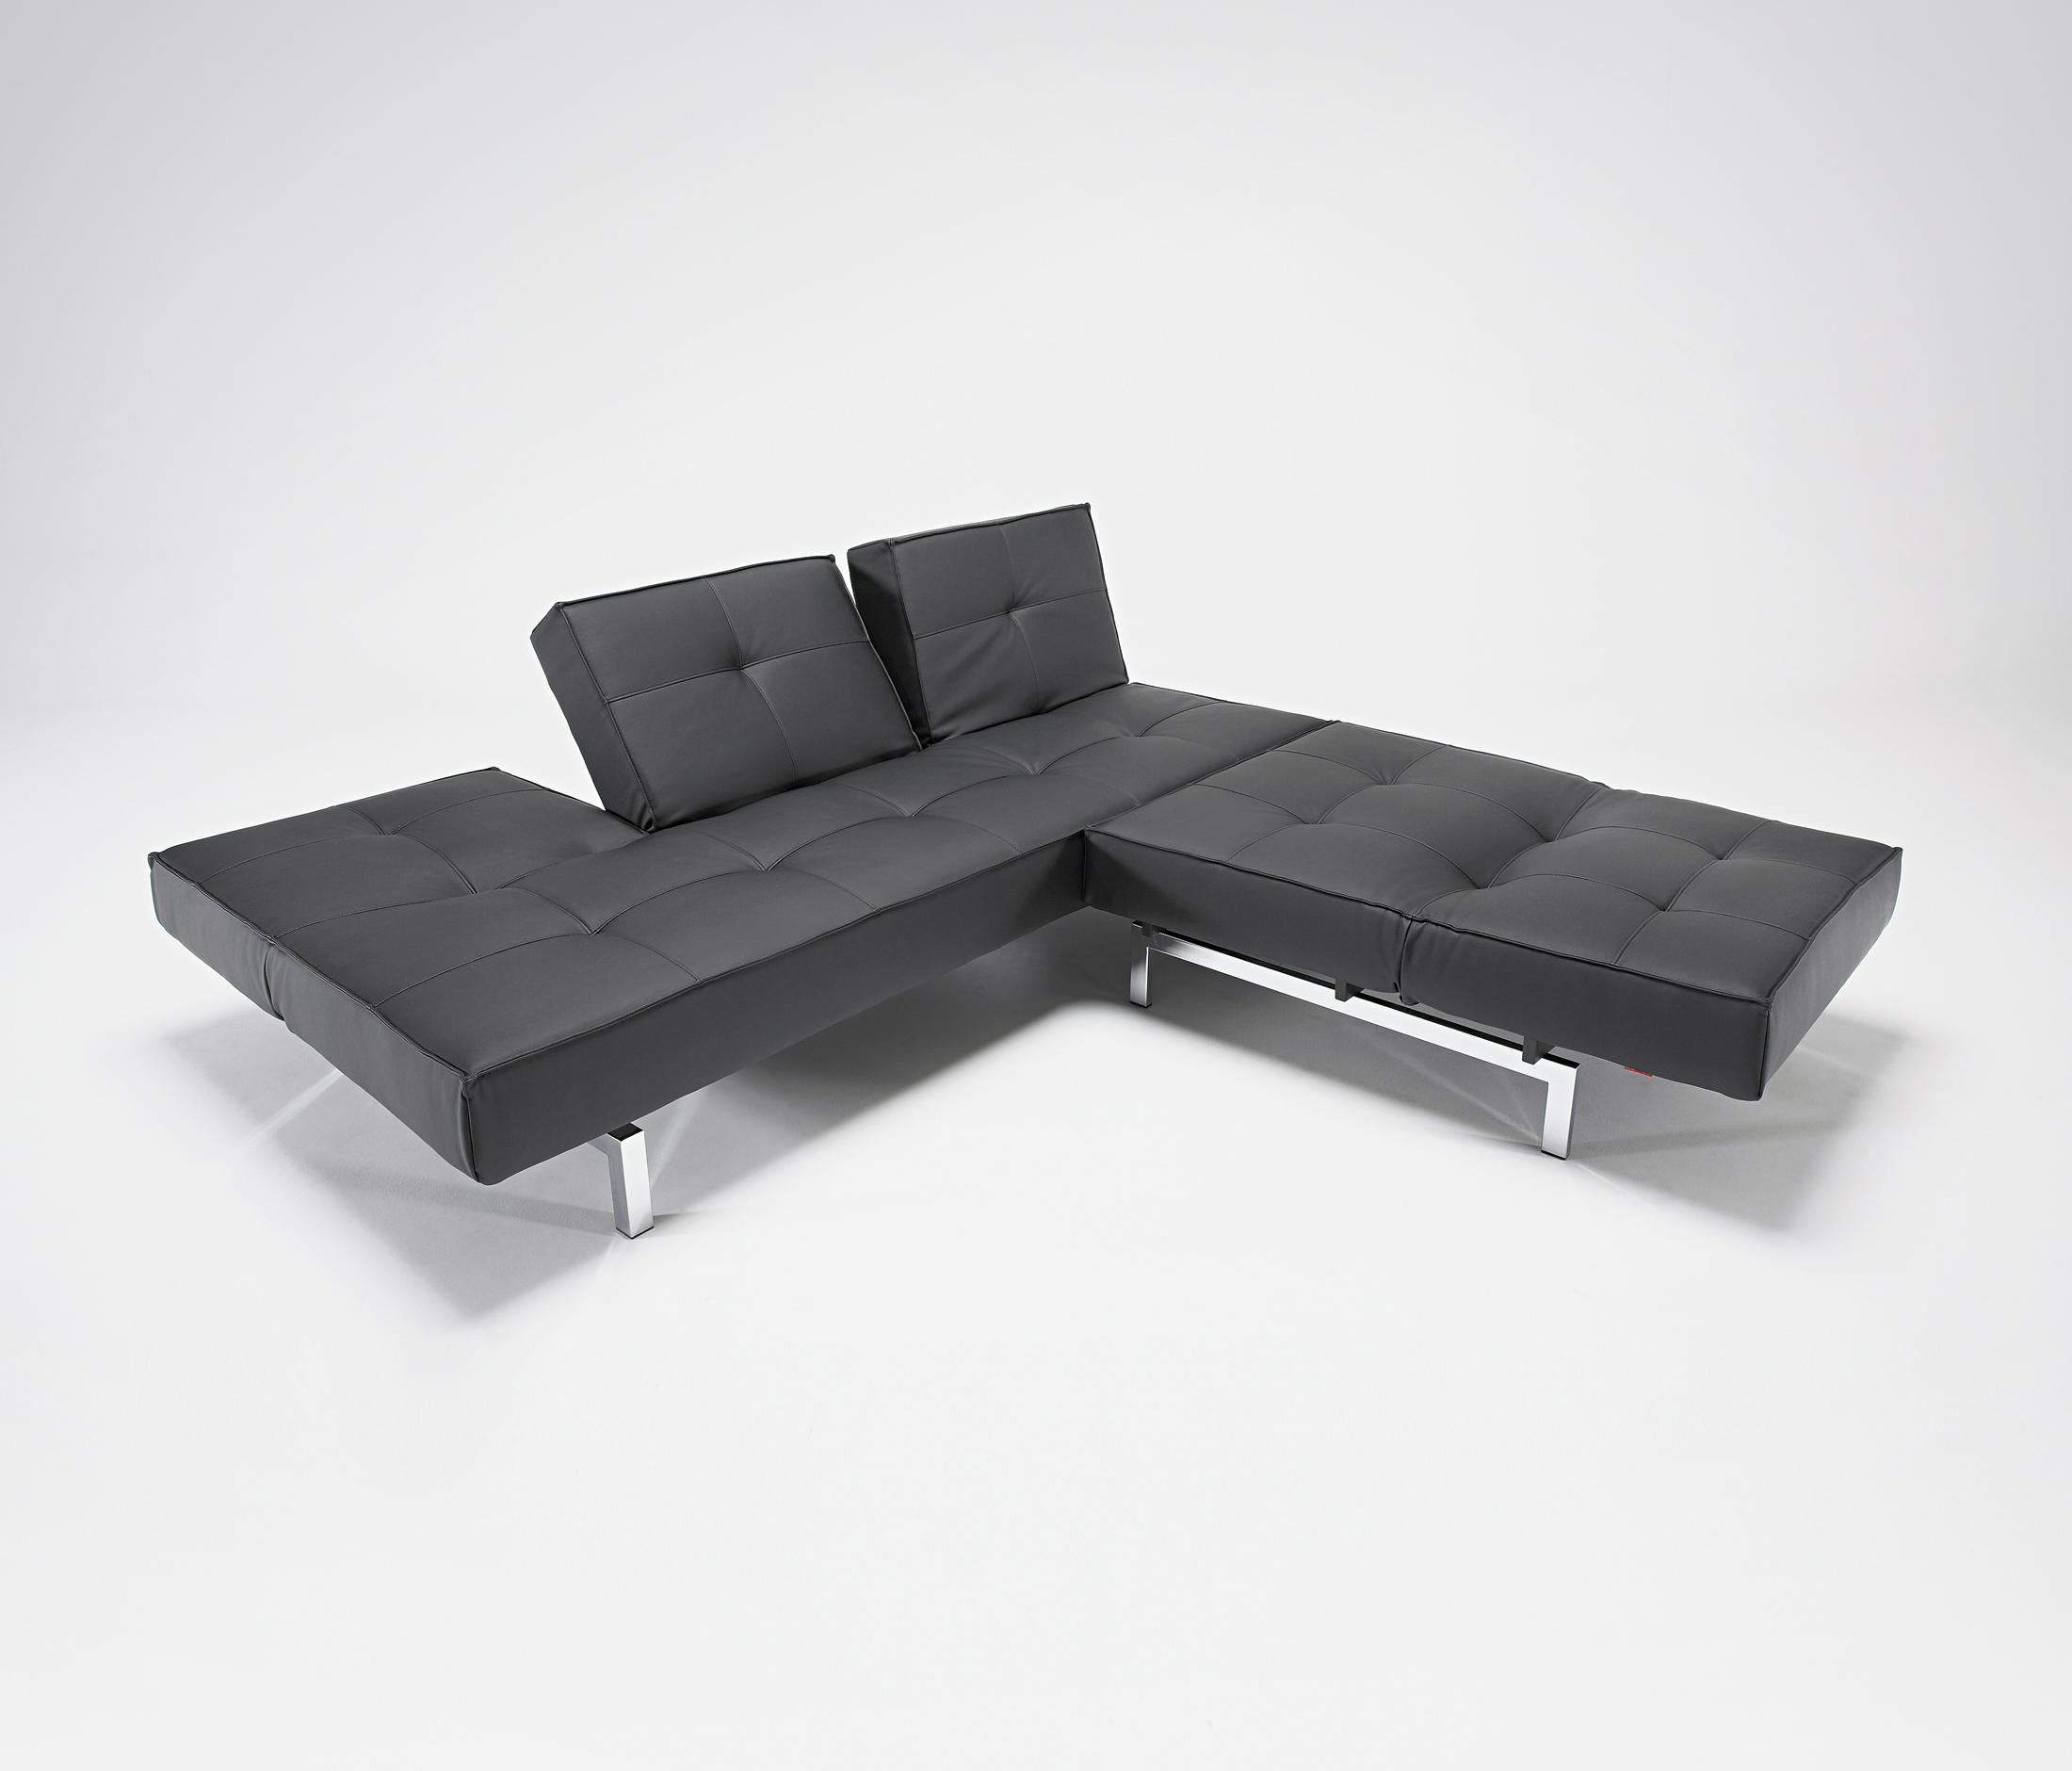 TRIPLEBACK Sofa beds from Innovation Randers